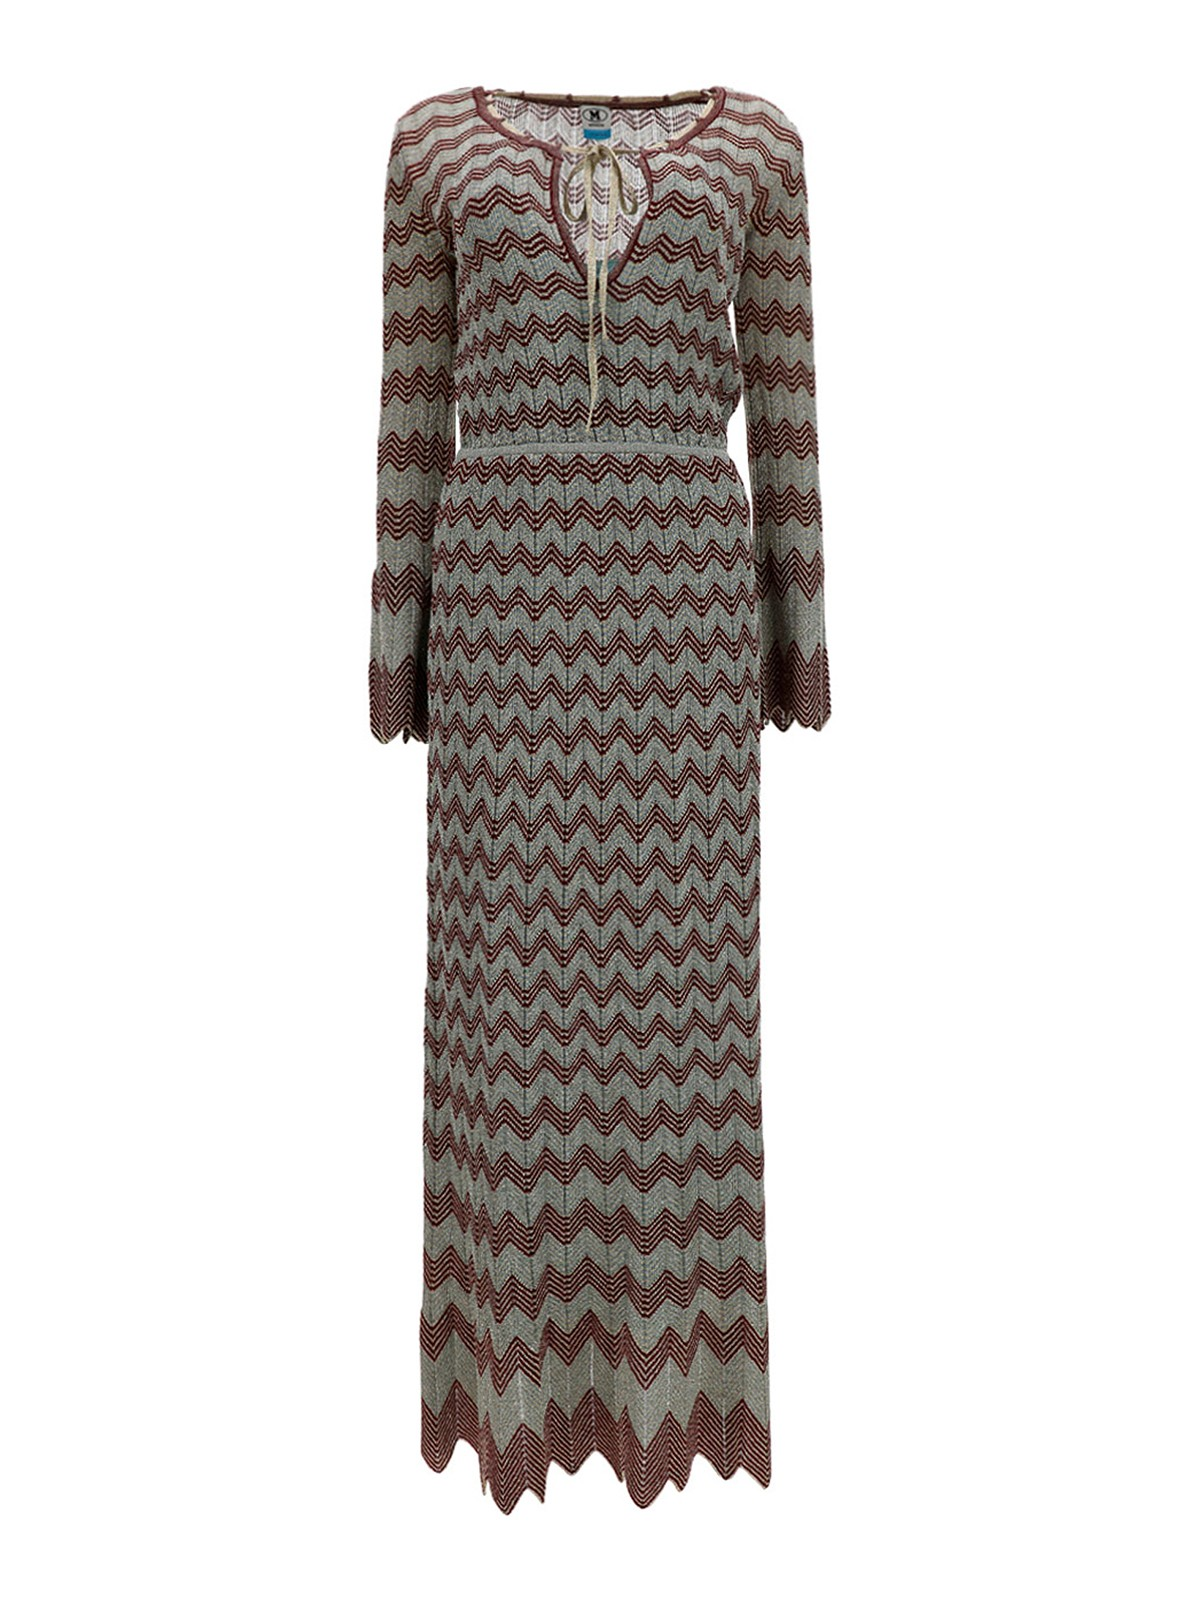 M Missoni VISCOSE-BLEND V-NECK DRESS